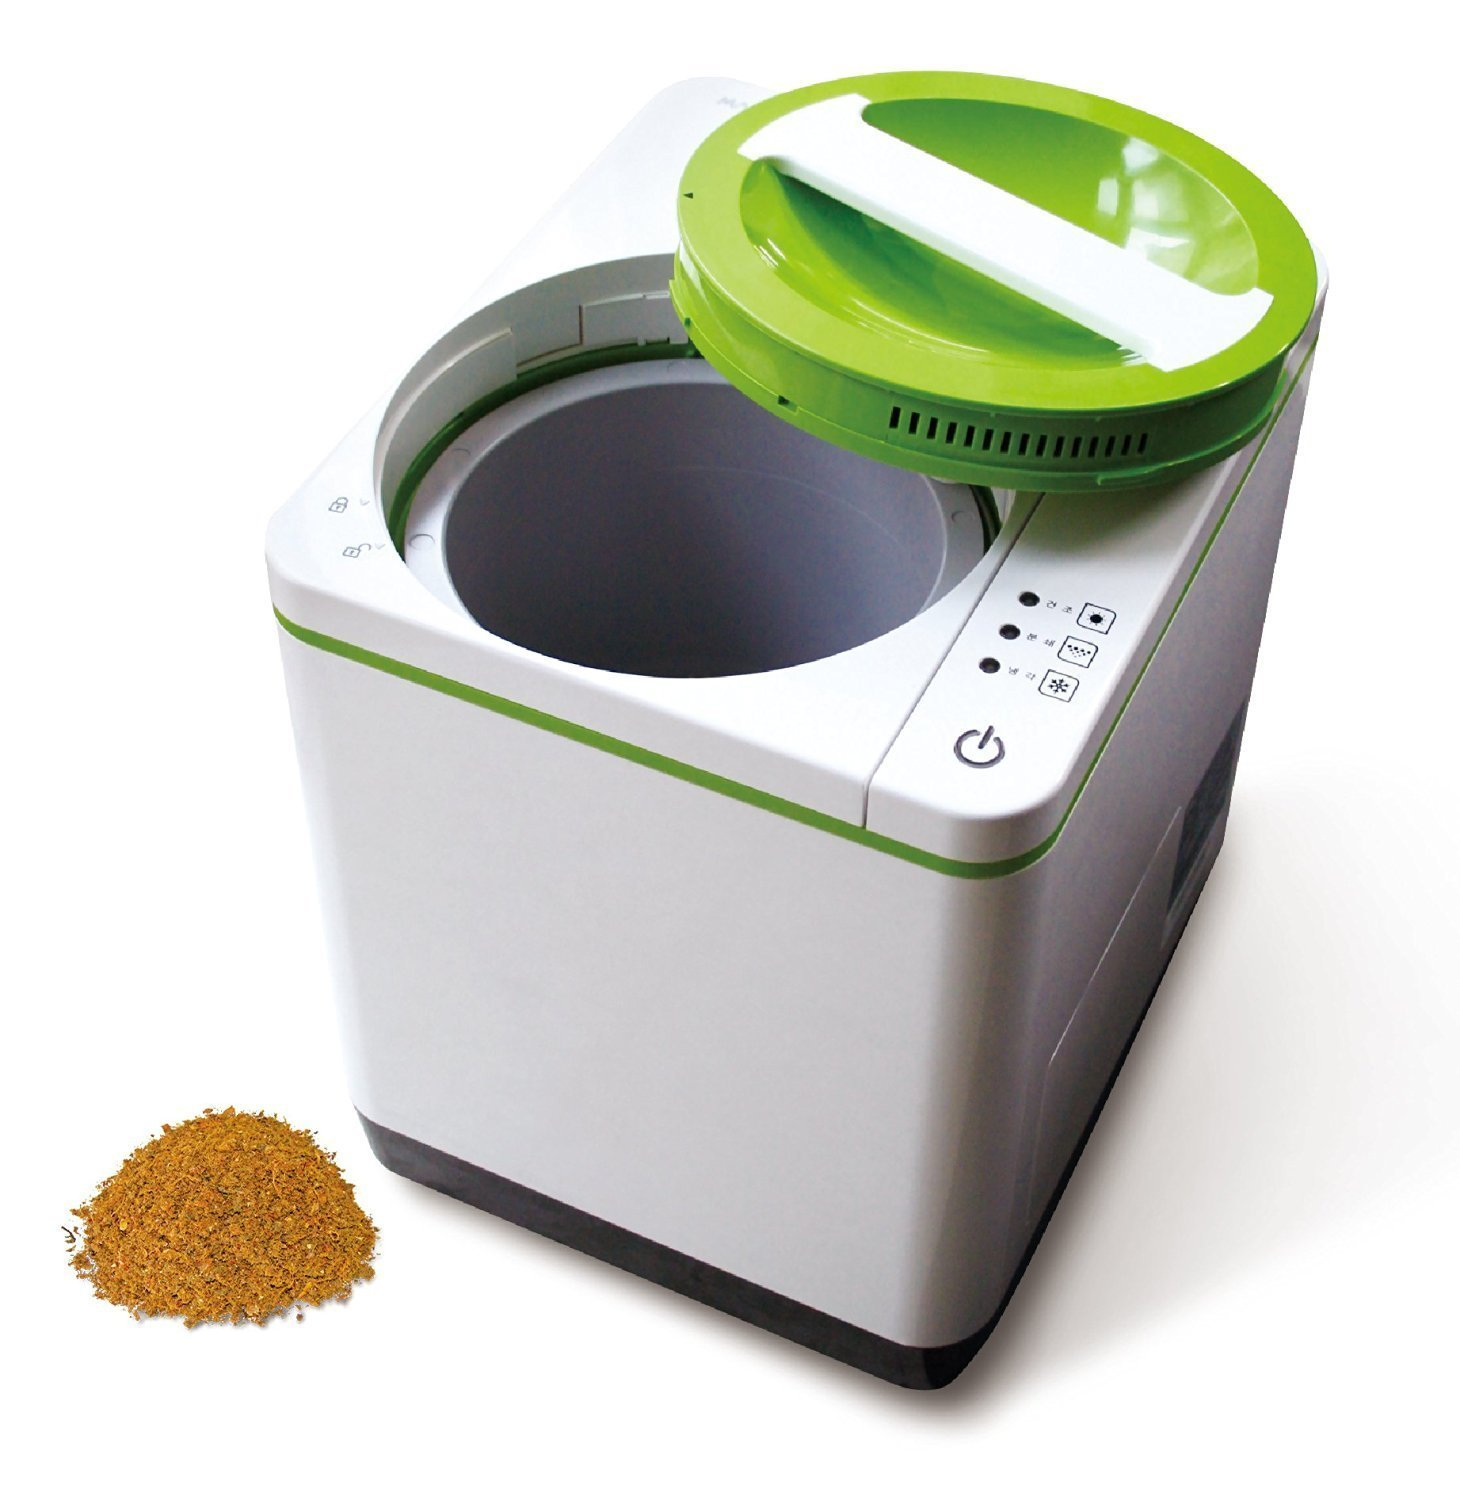 Food Cycler Indoor Kitchen Compost Container - Easy to Use and Environmentally Friendly Food Composter with No Water, Chemicals, Venting or Draining Required